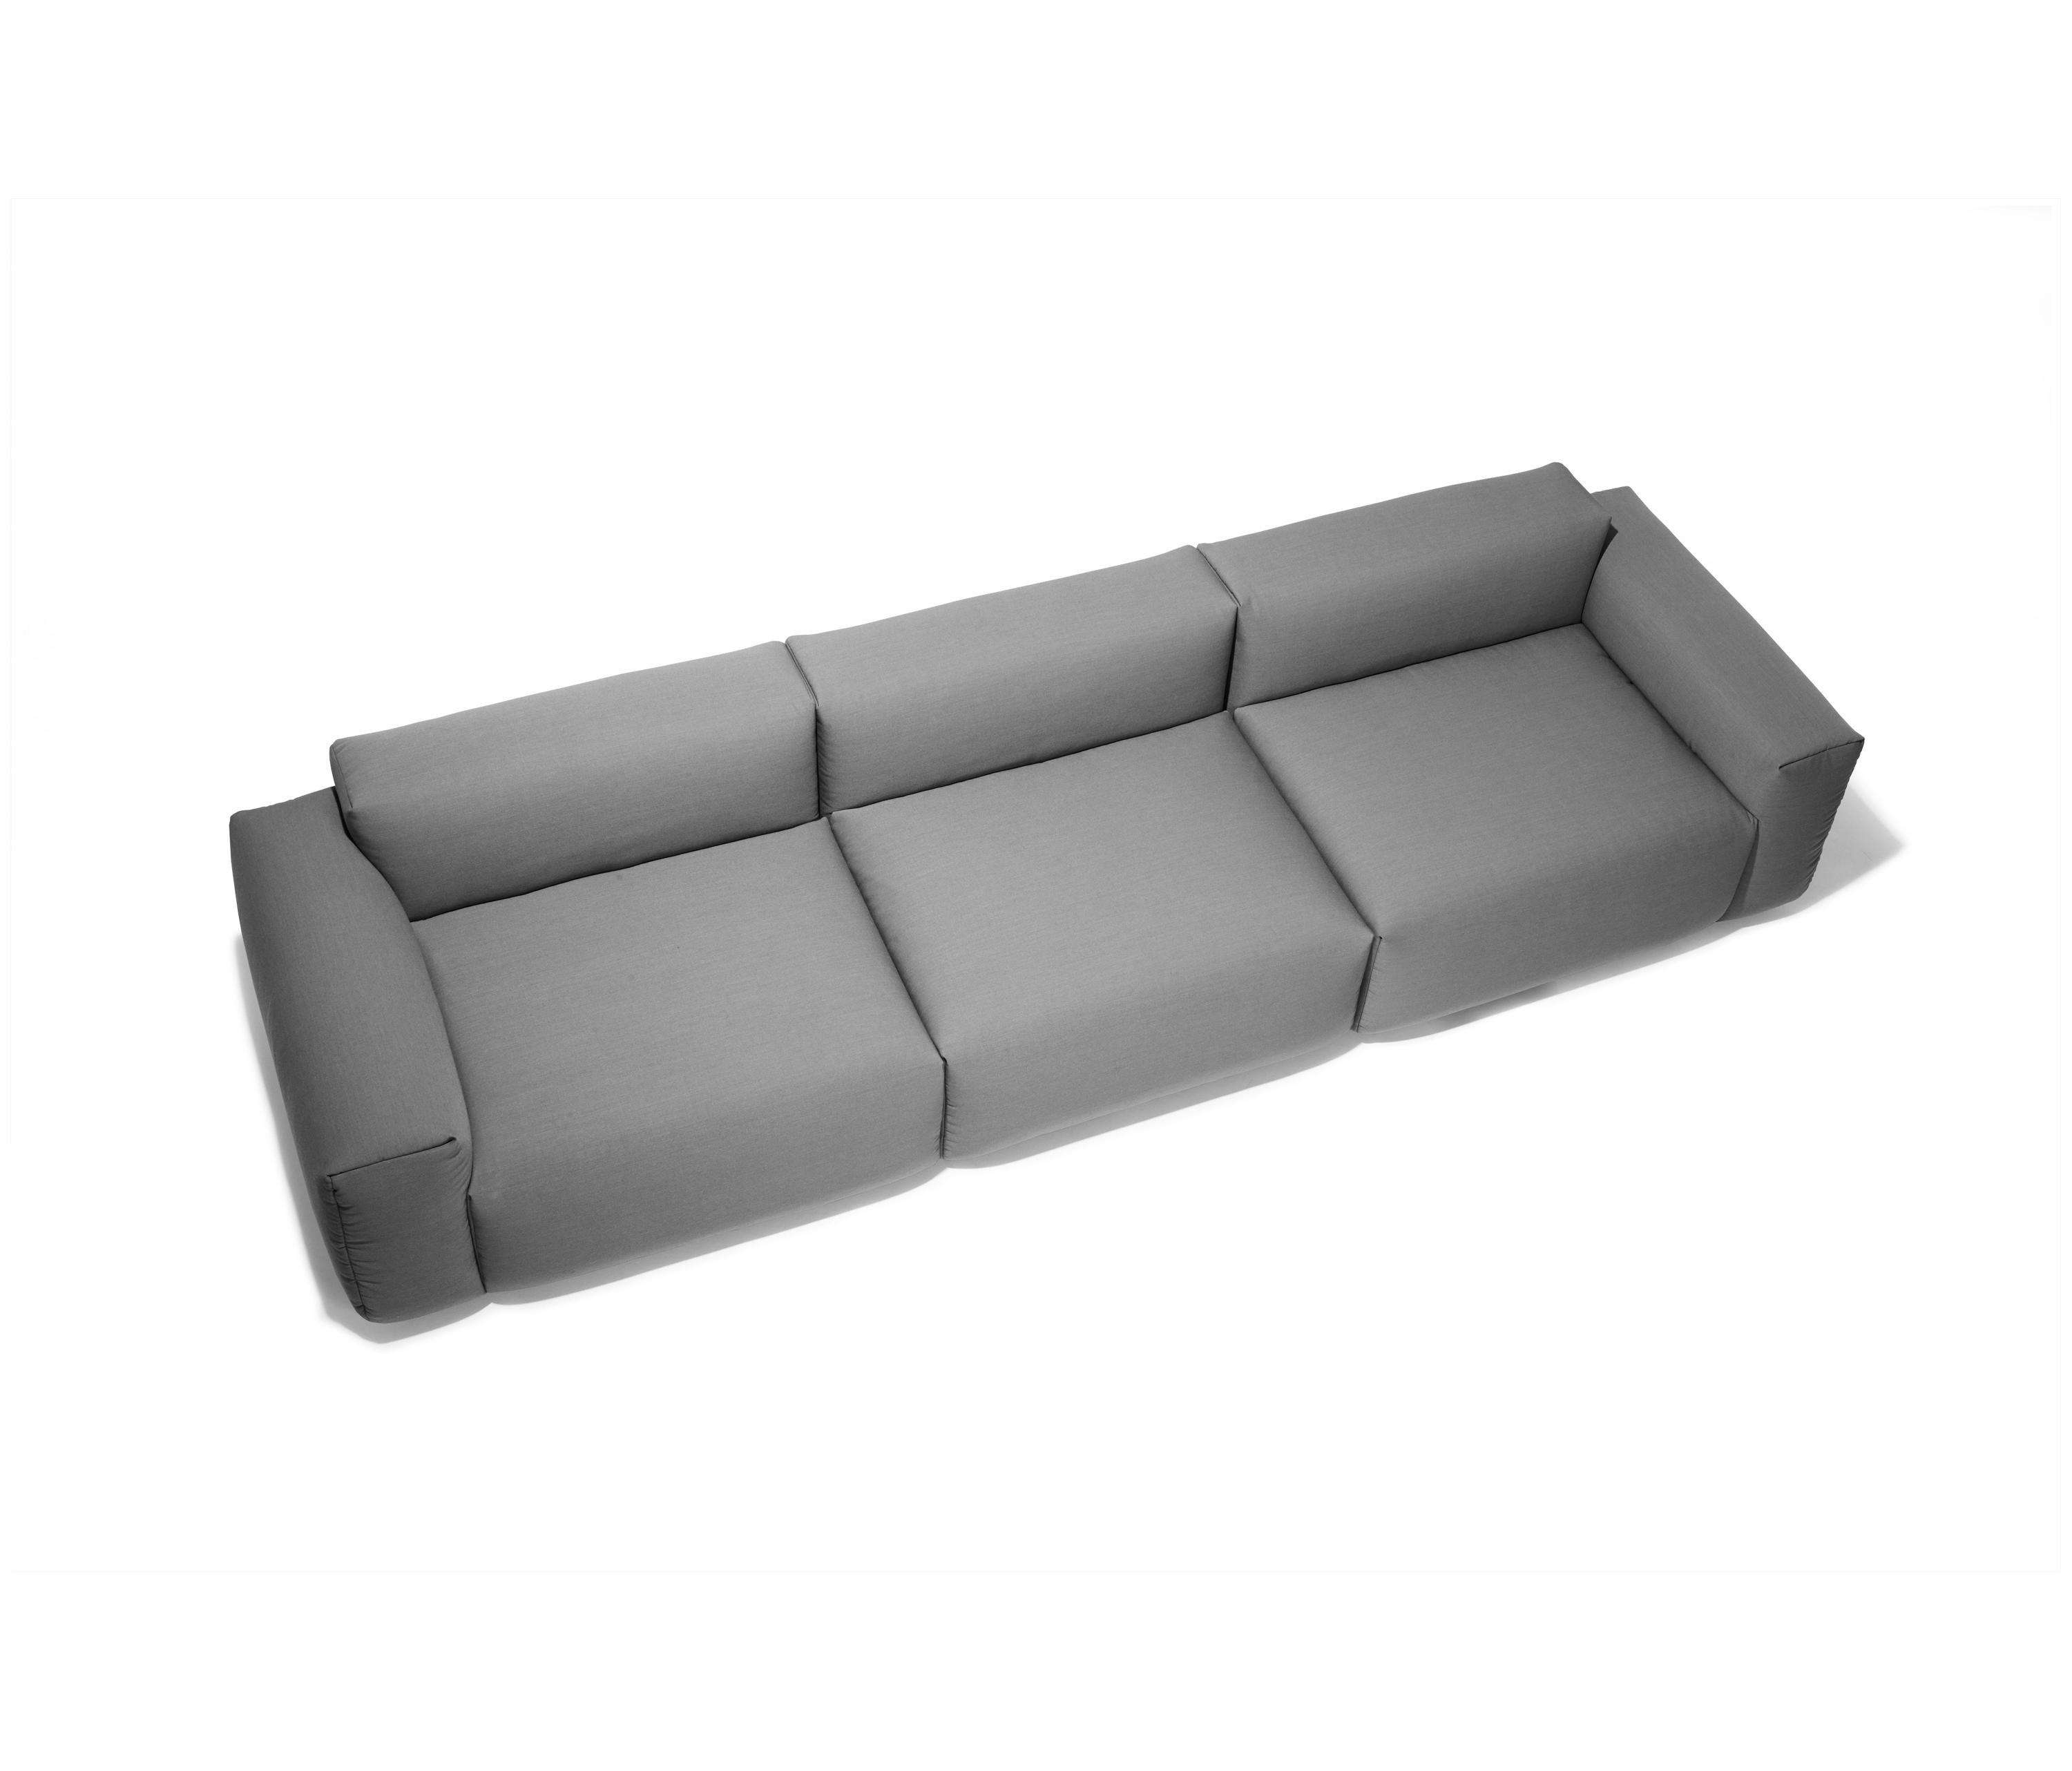 Loose 3 seater xl lounge sofas from versus architonic loose 3 seater xl by versus lounge sofas parisarafo Gallery